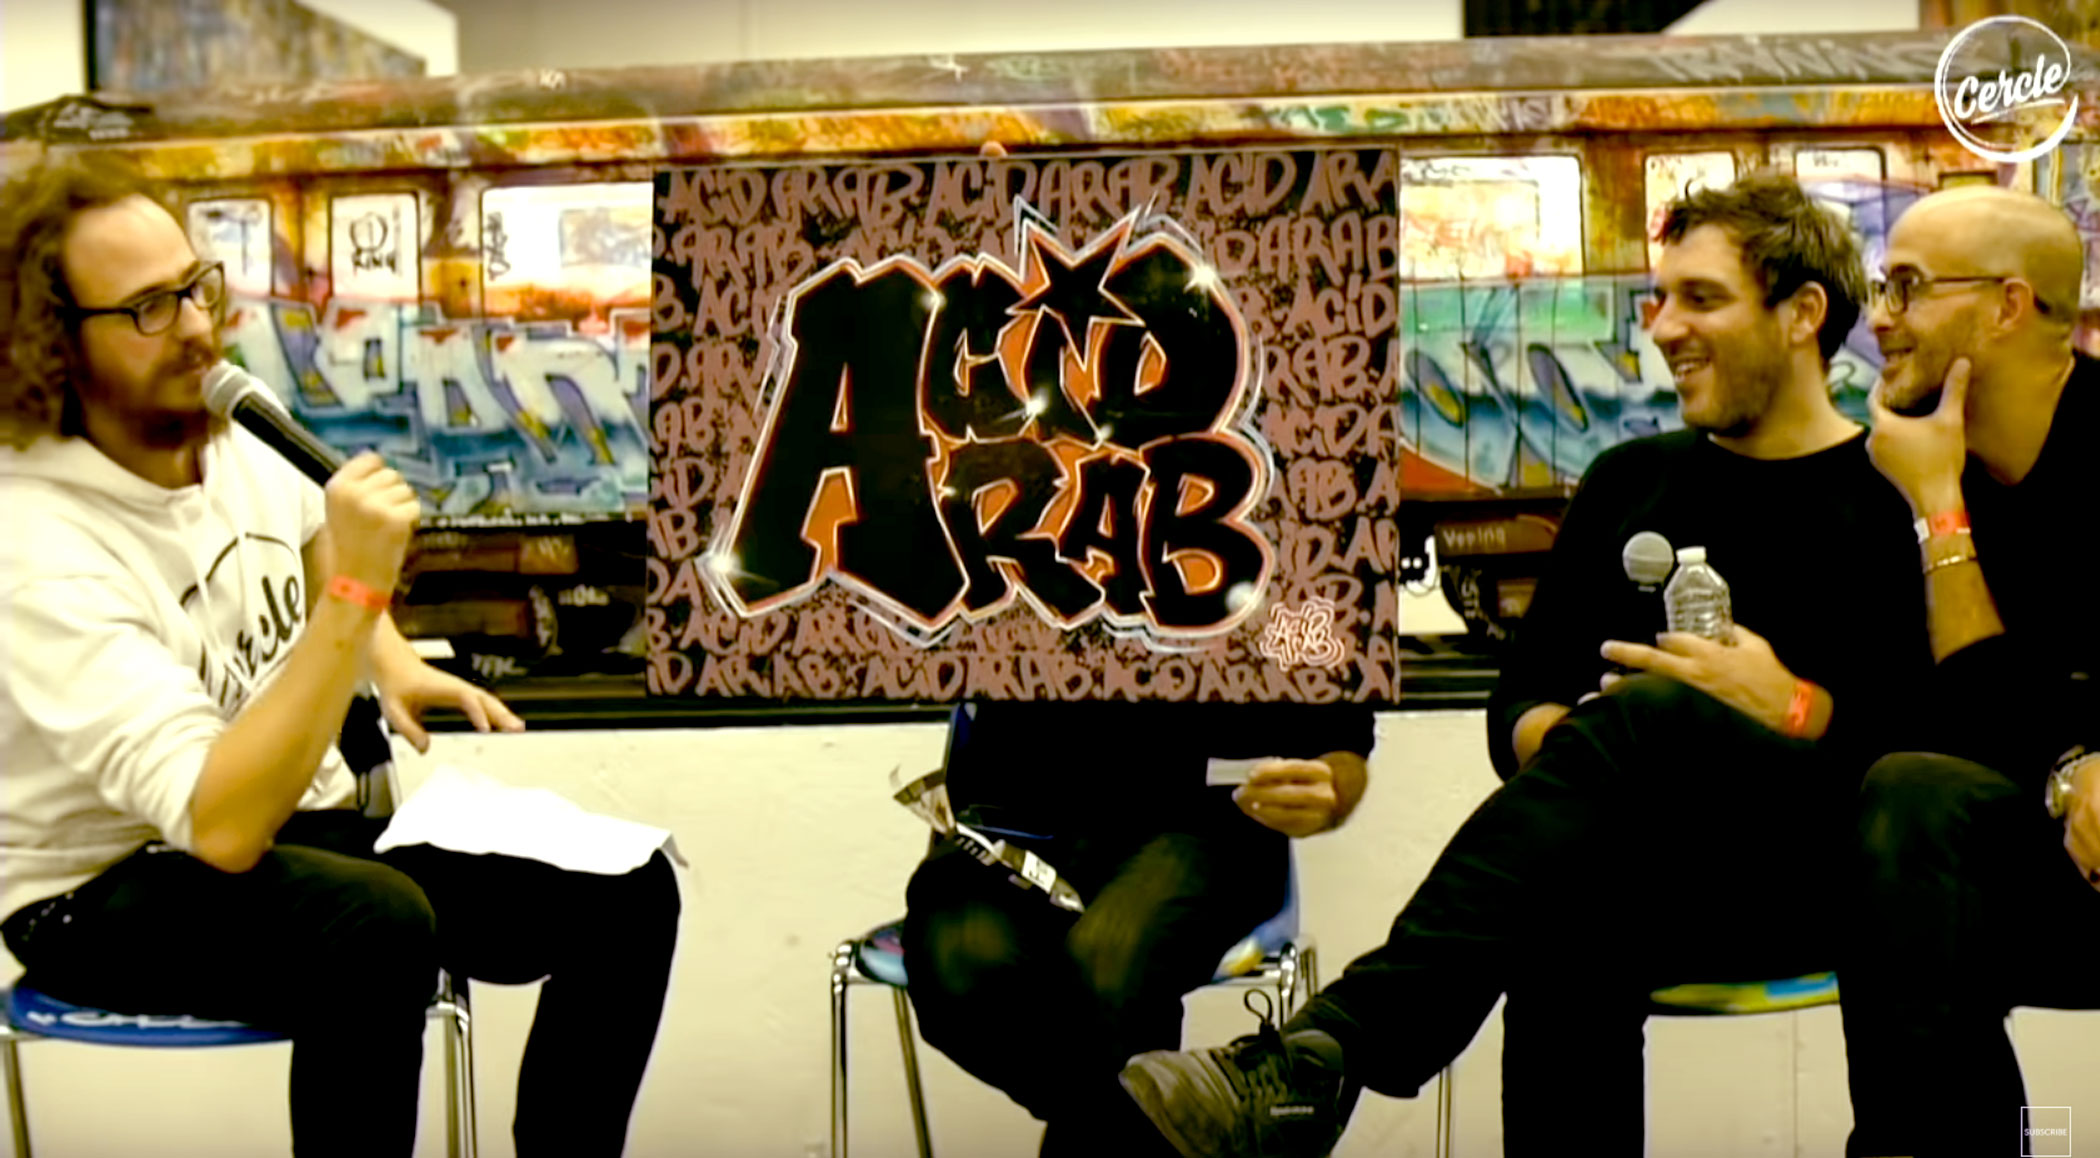 geograffeur-cercle-acid-arab-interview